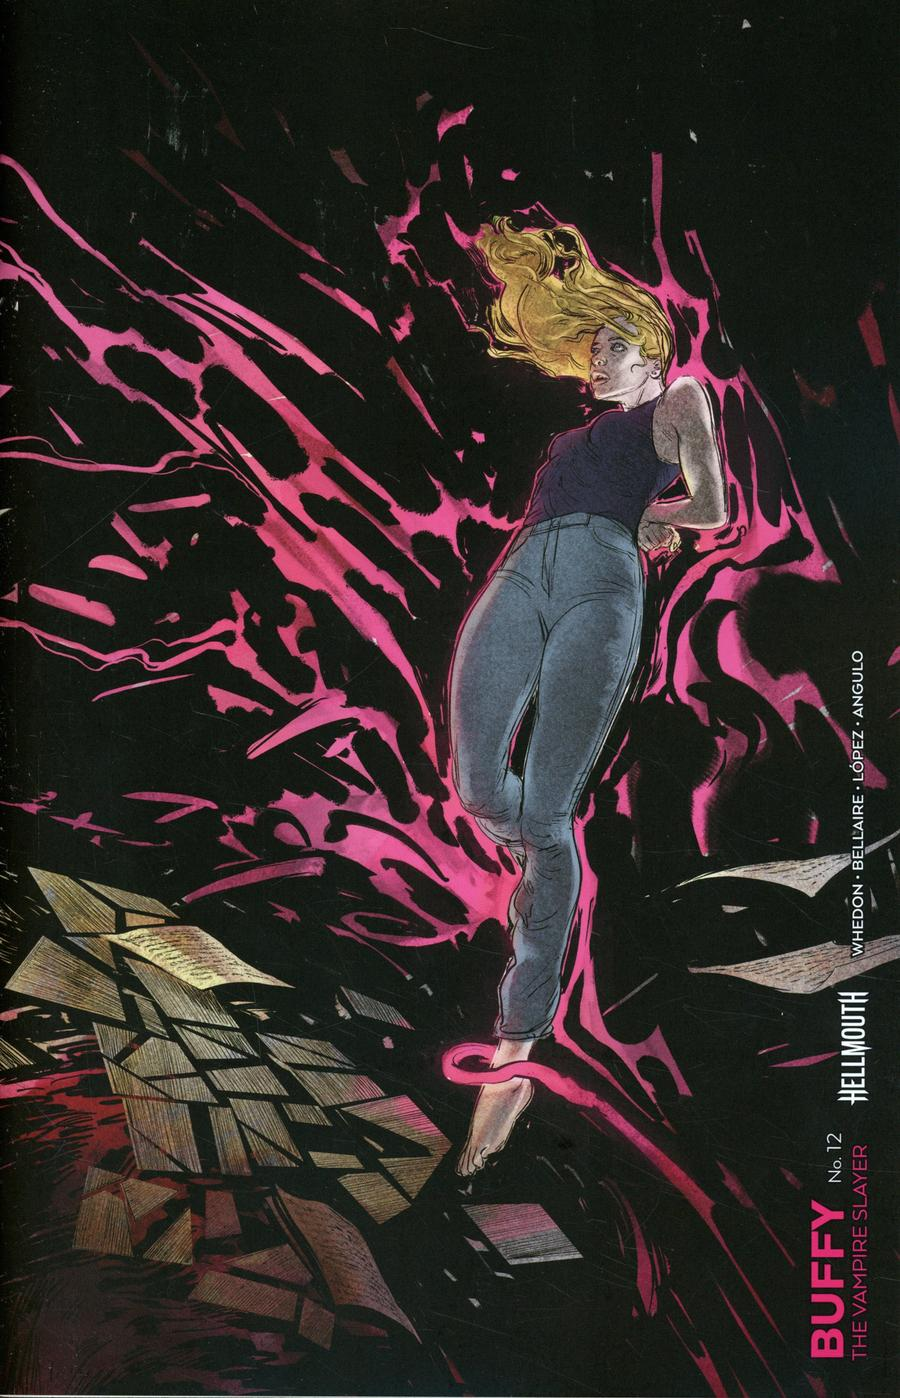 Buffy The Vampire Slayer Vol 2 #12 Cover C Variant Vanesa R Del Rey Connecting Cover (Hellmouth Tie-In)